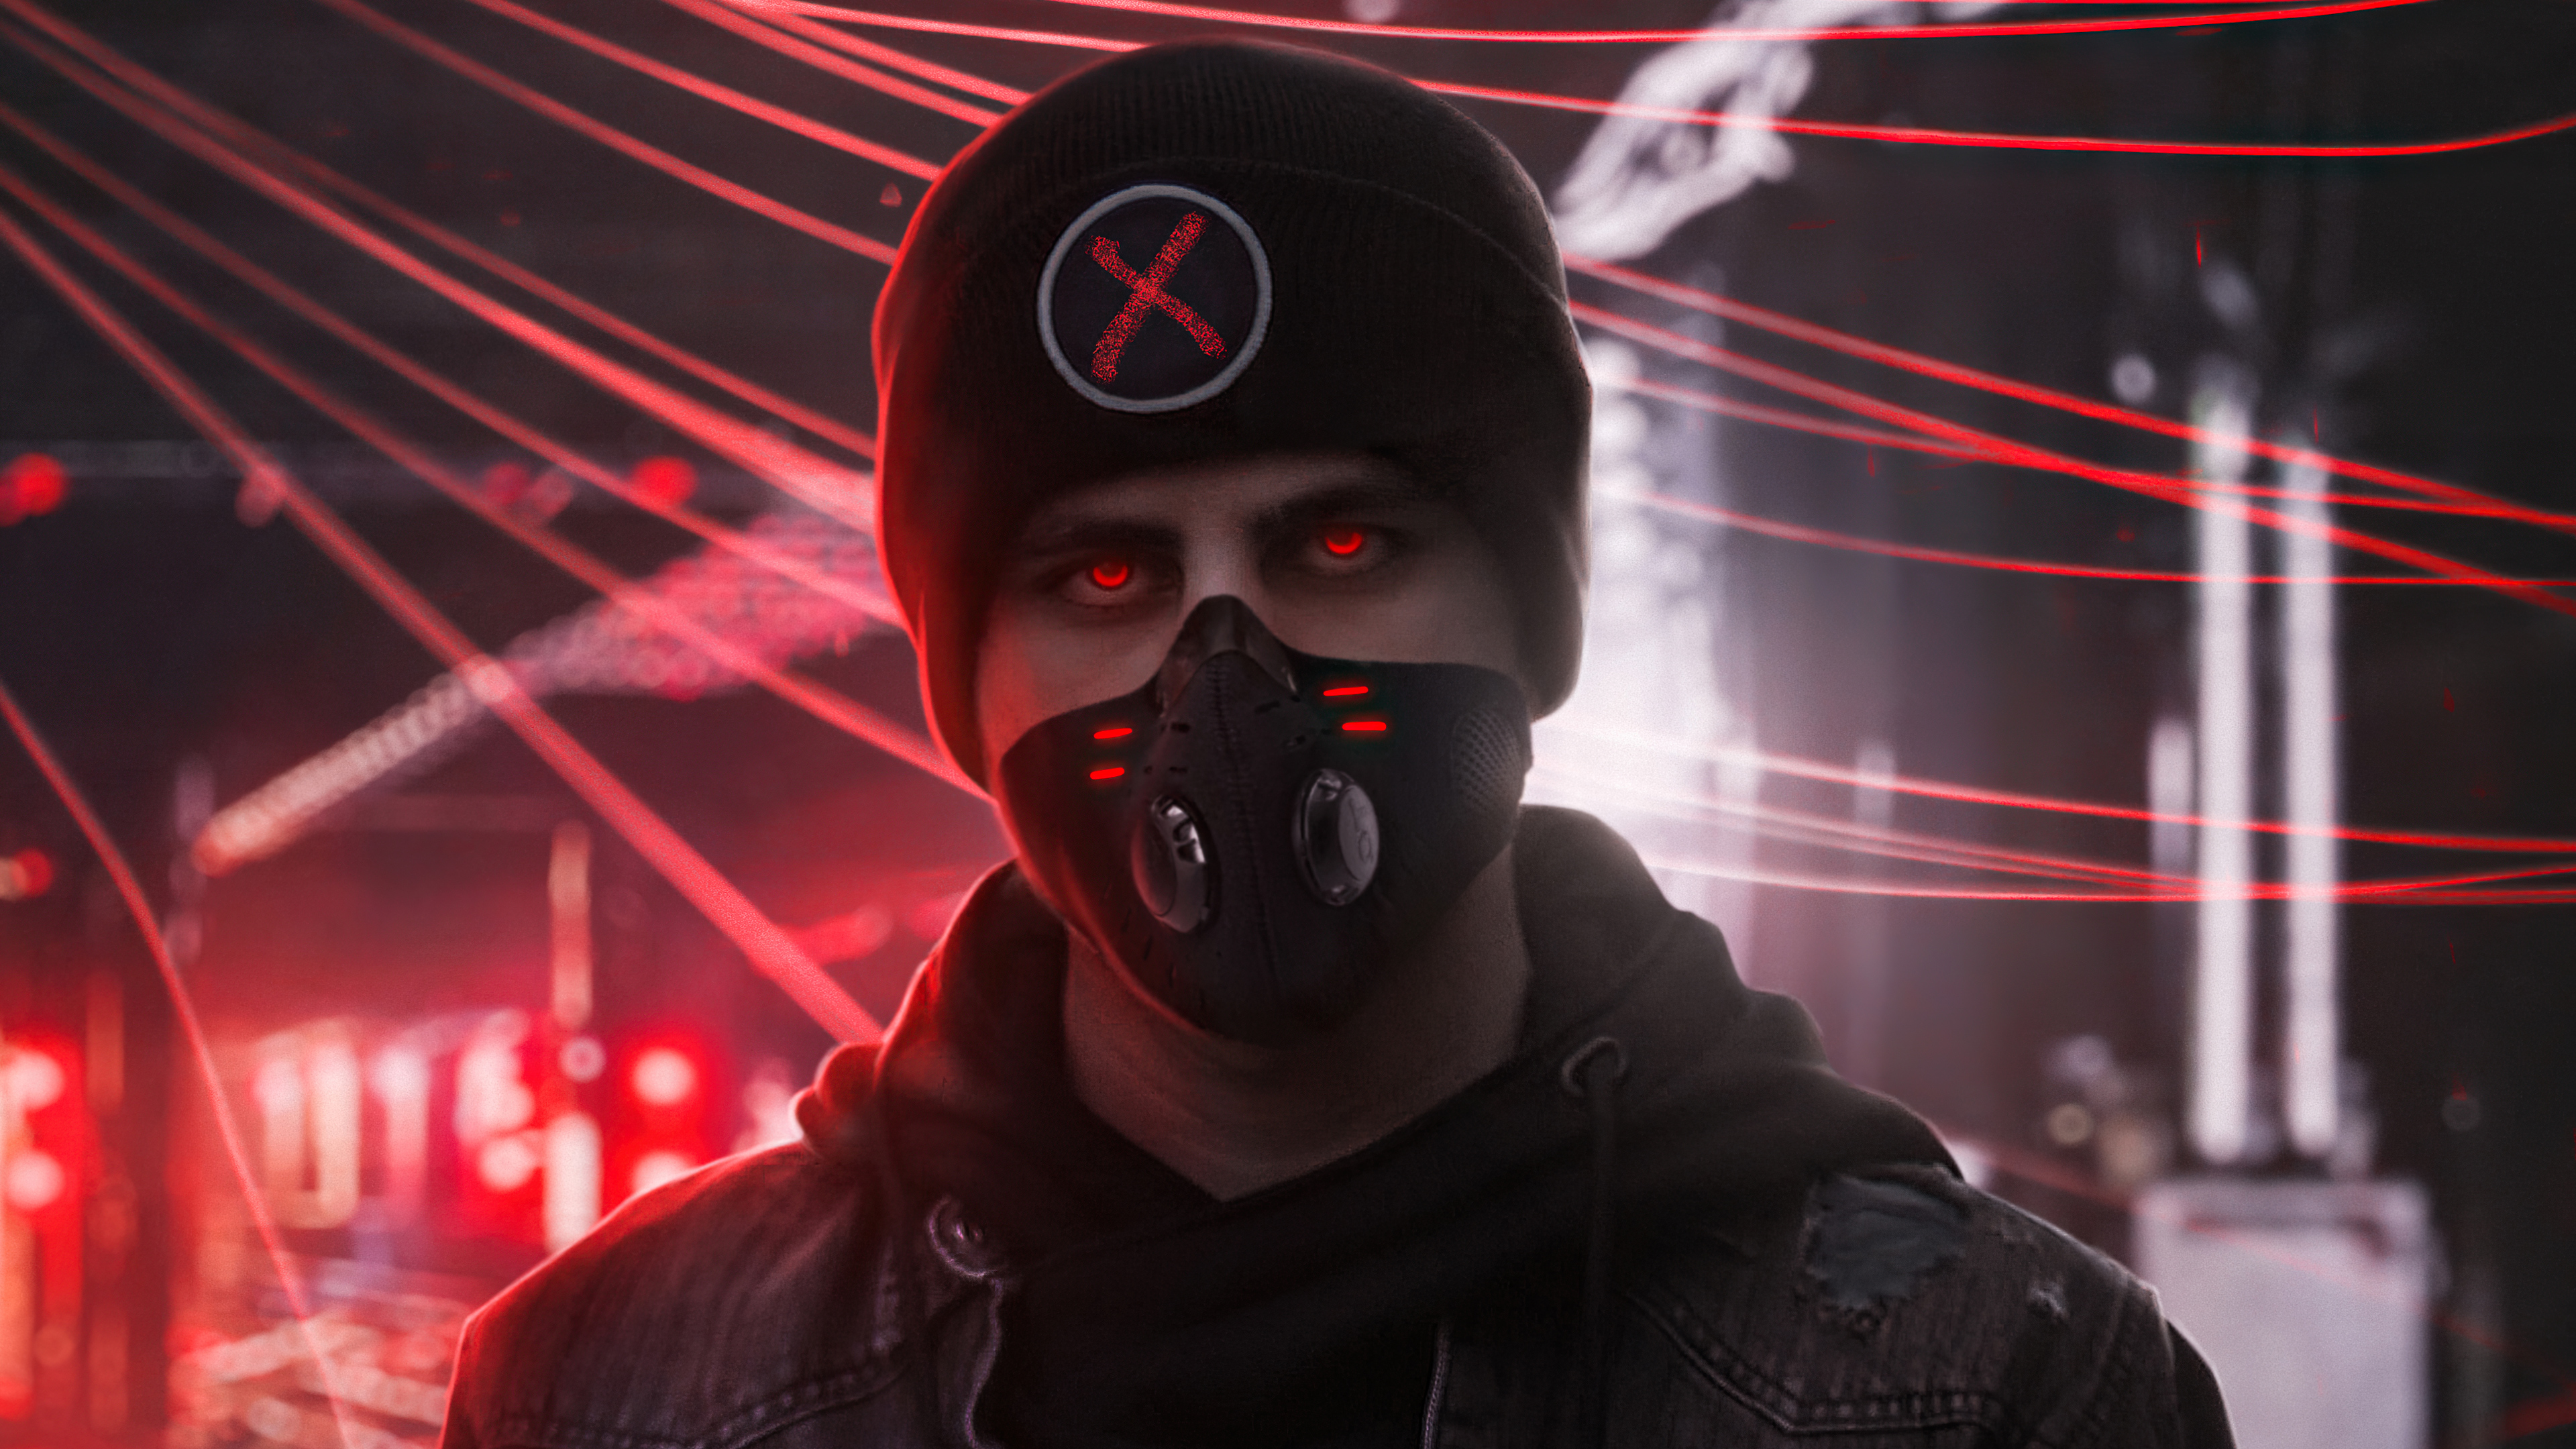 red alert glowing eyes boy 4k 1603398352 - Red Alert Glowing Eyes Boy 4k - Red Alert Glowing Eyes Boy 4k wallpapers